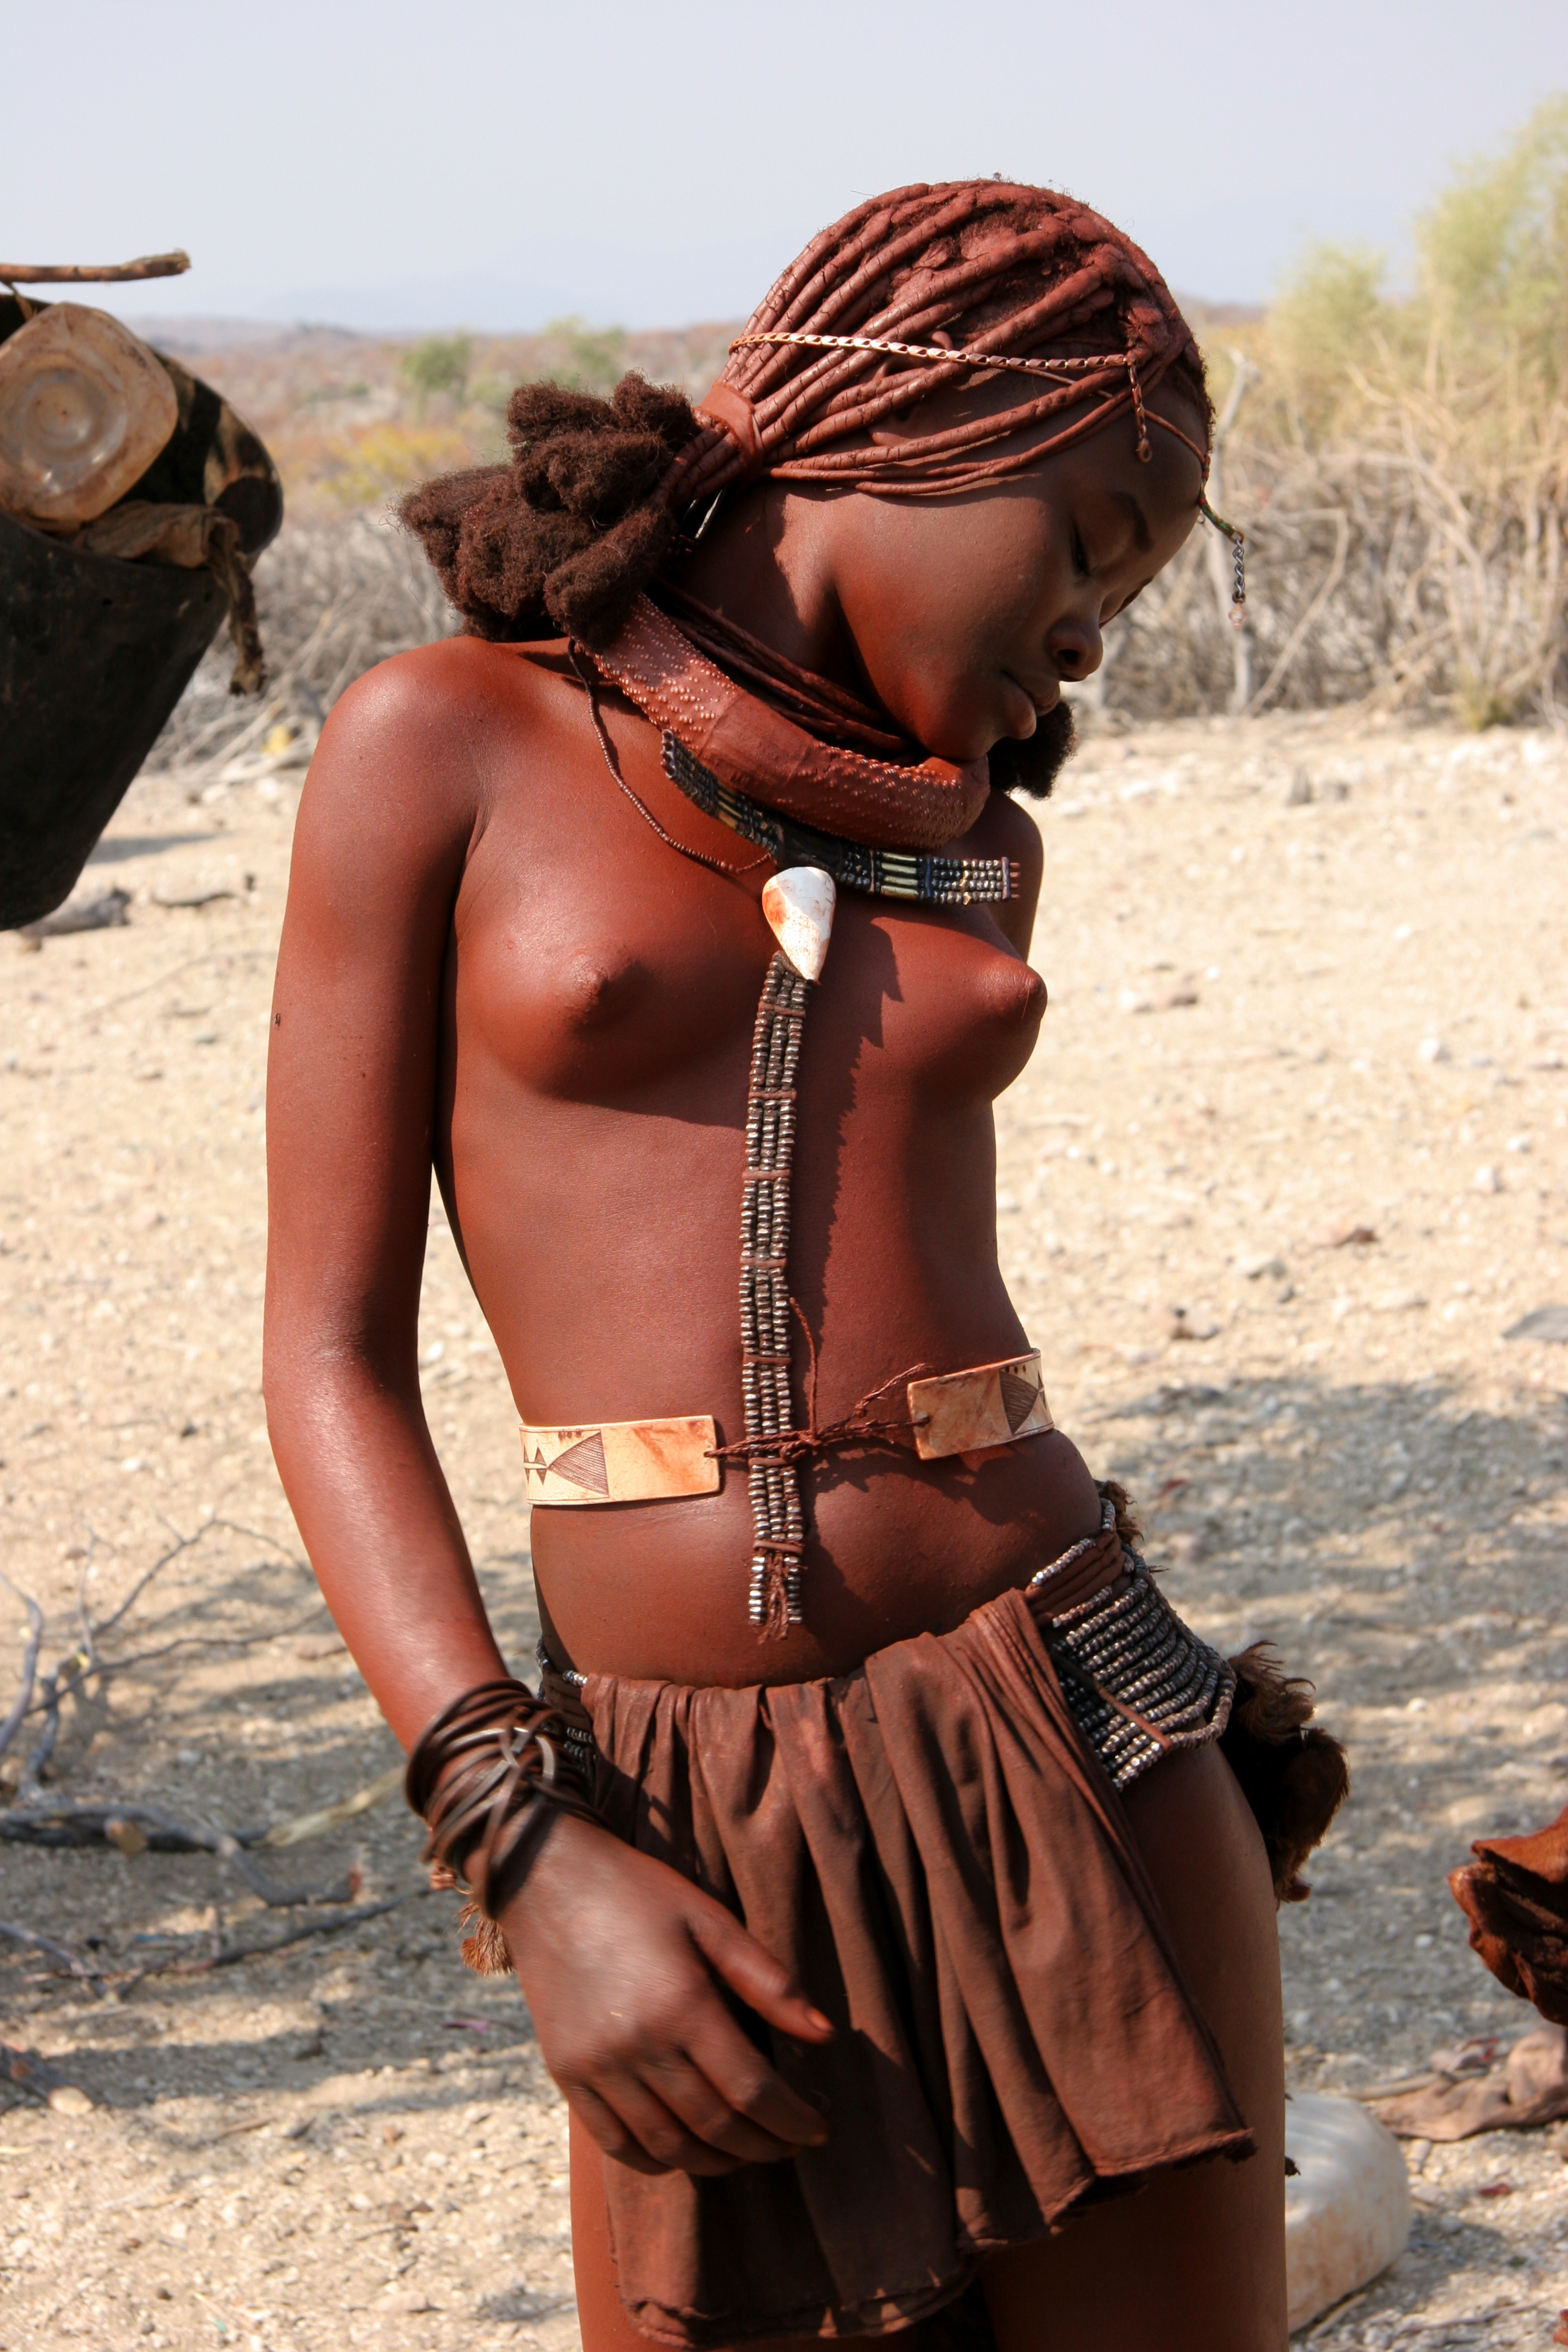 pics upskirt The people himba